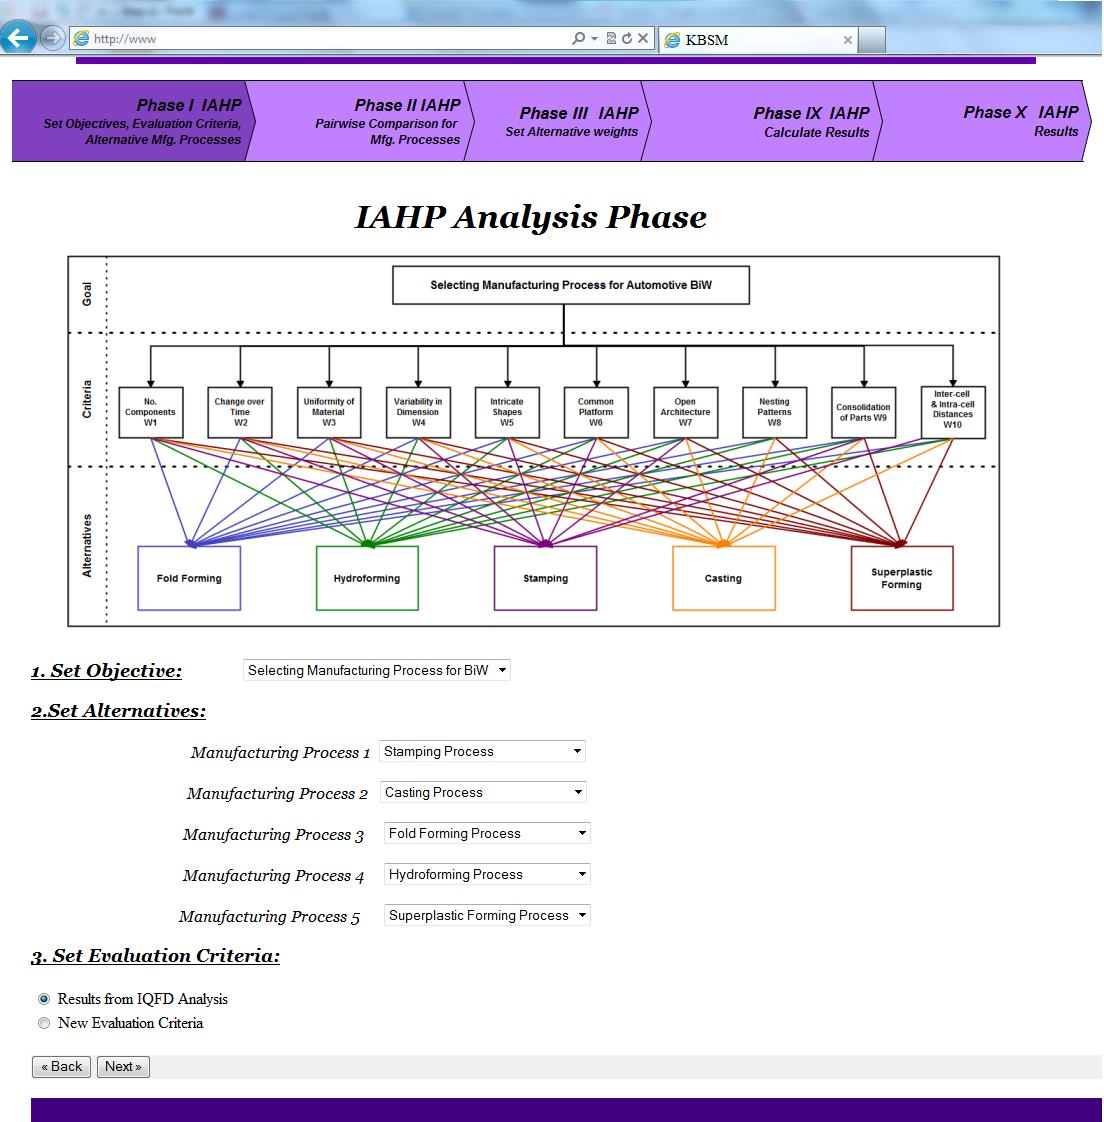 IAHP Analysis